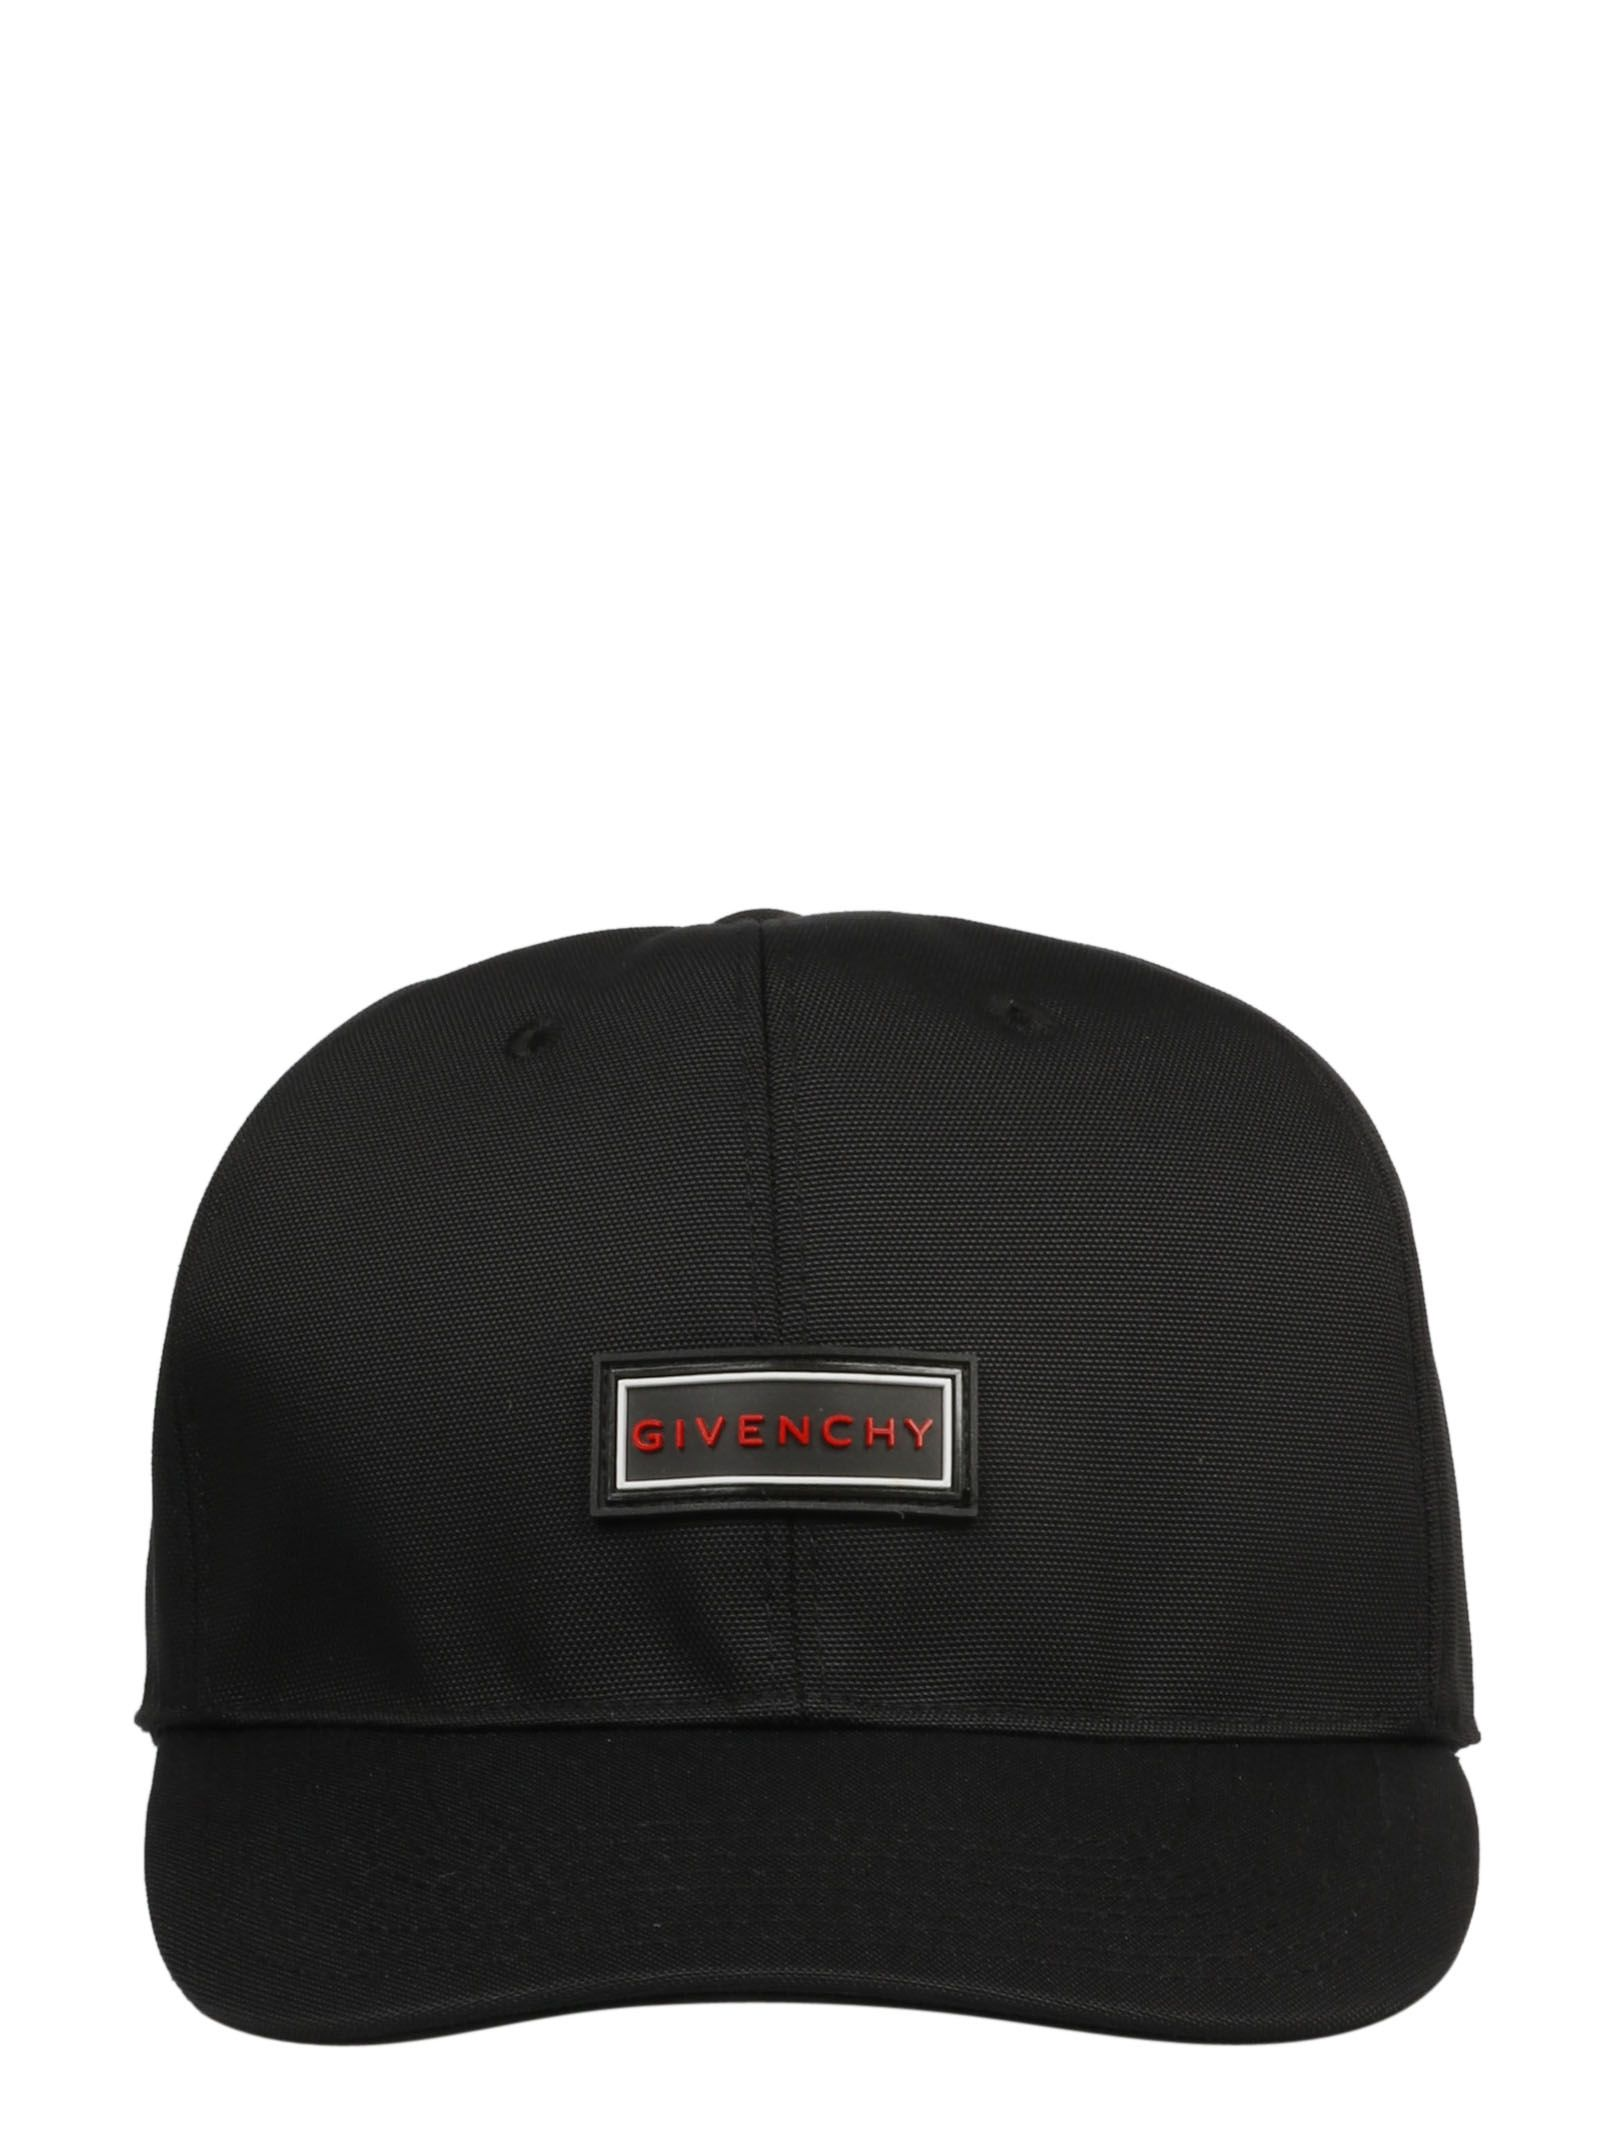 Givenchy Givenchy Logo Patched Cap - 10800460  fe8f133fc1b